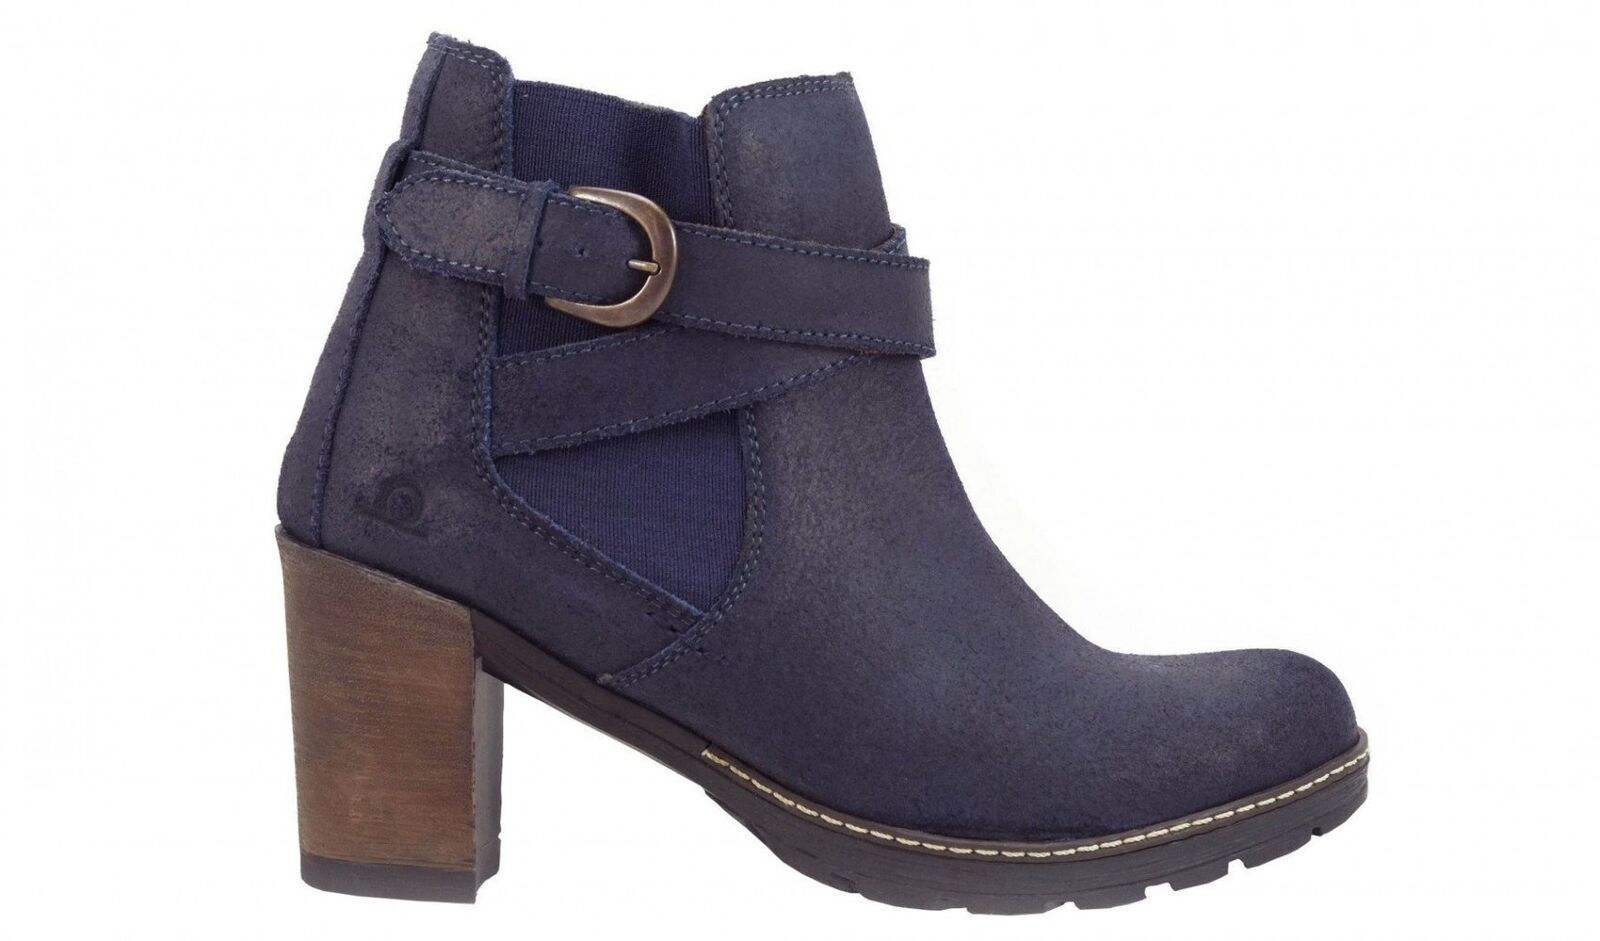 Chatham Amy Heeled Navy Leder Ankle Stiefel Stiefel Stiefel a4e037